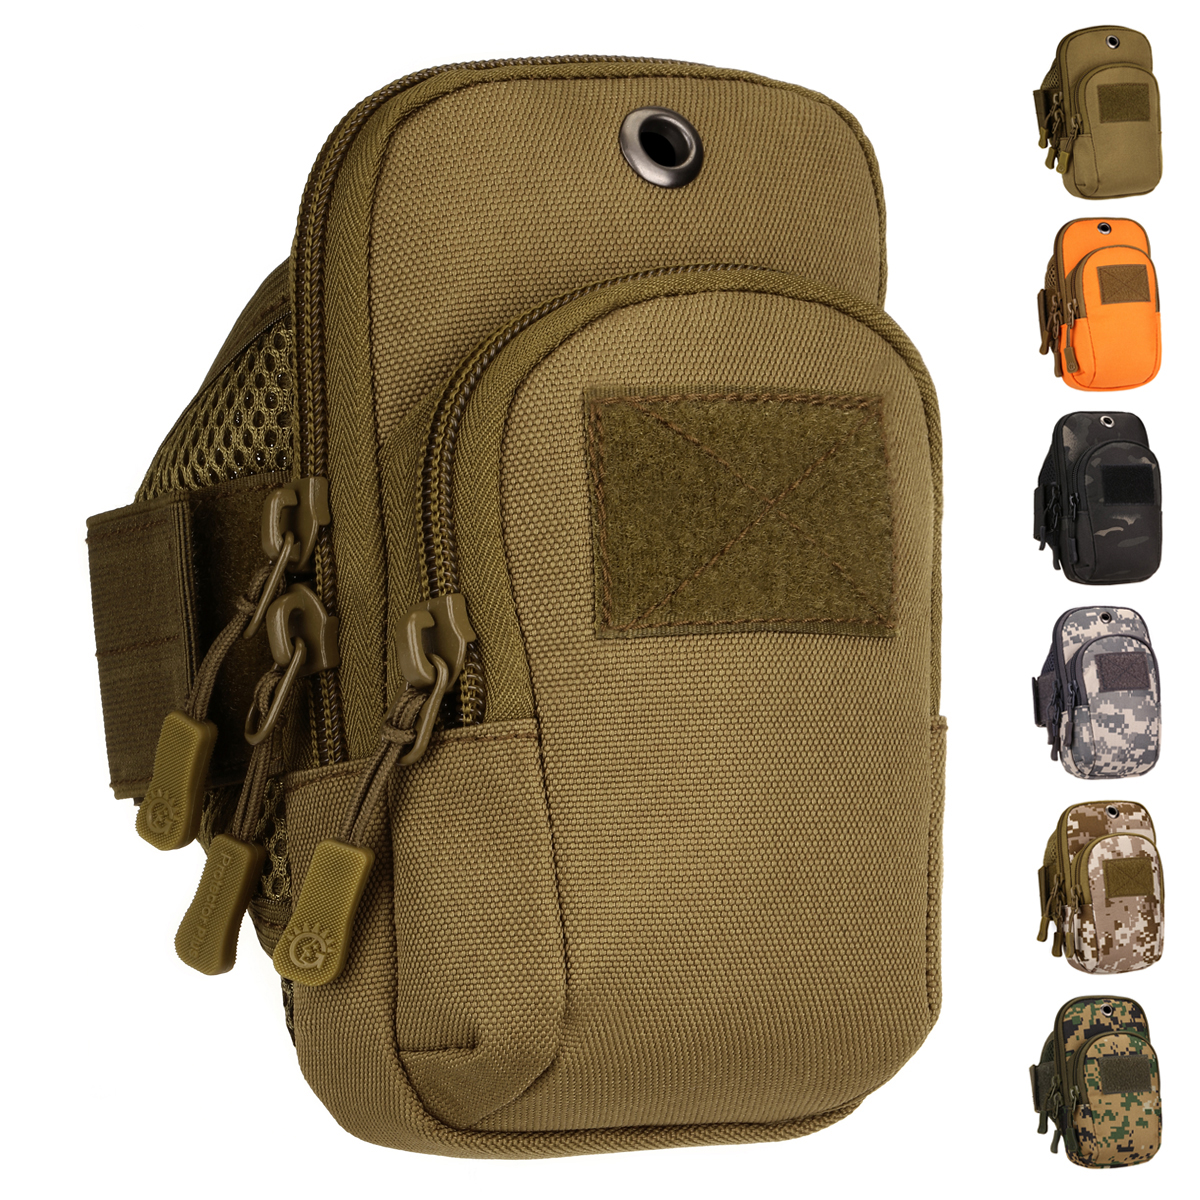 Motorcycle Riding Cell Phone Case Bags Cigarette Pocket Camouflage High Quality Military Assault Men Nylon Accessory Arm Bag